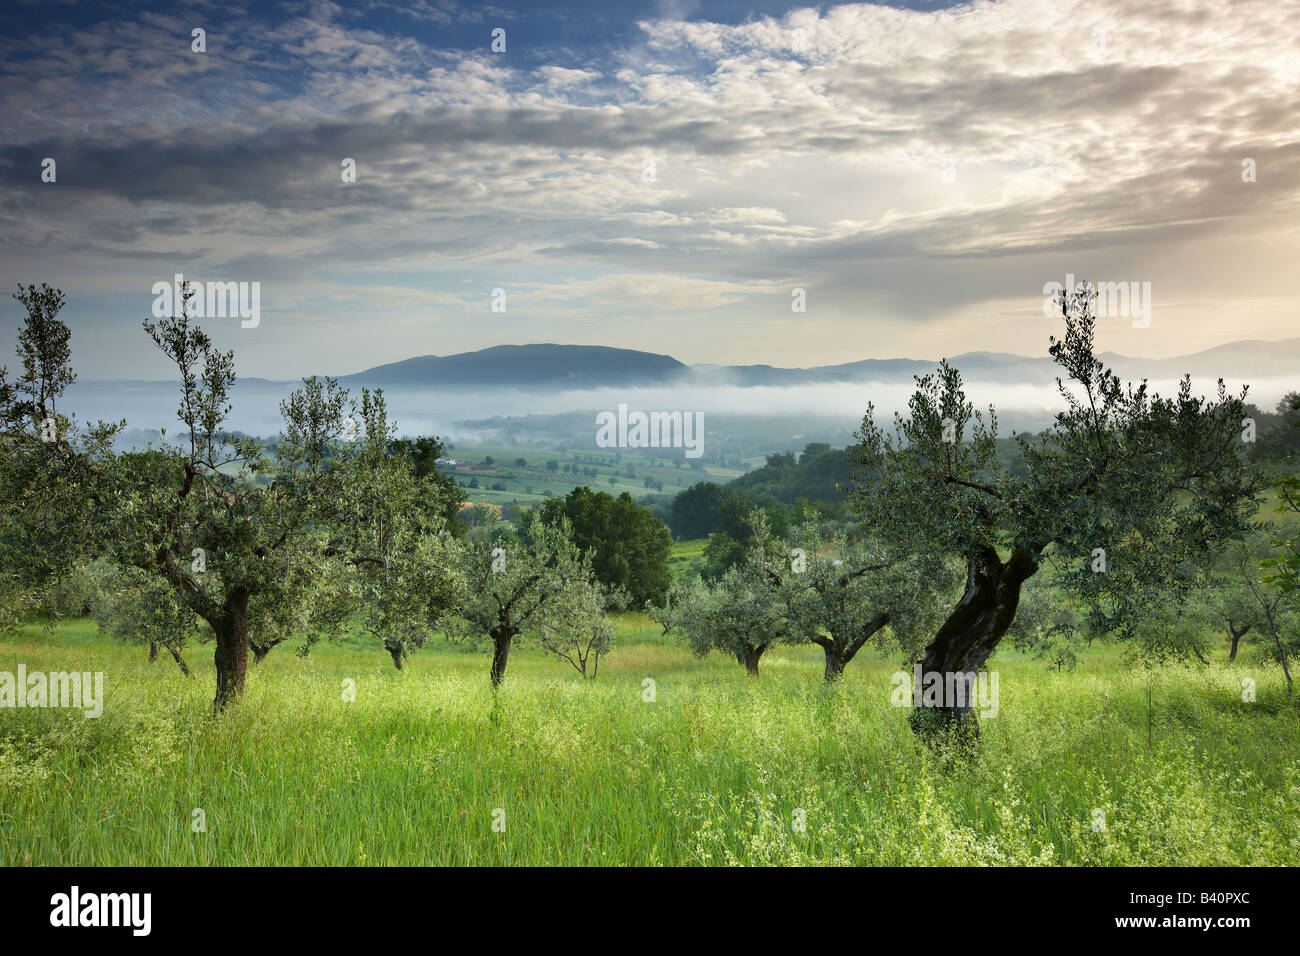 an olive grove near Montefalco, Umbria, Italy - Stock Image